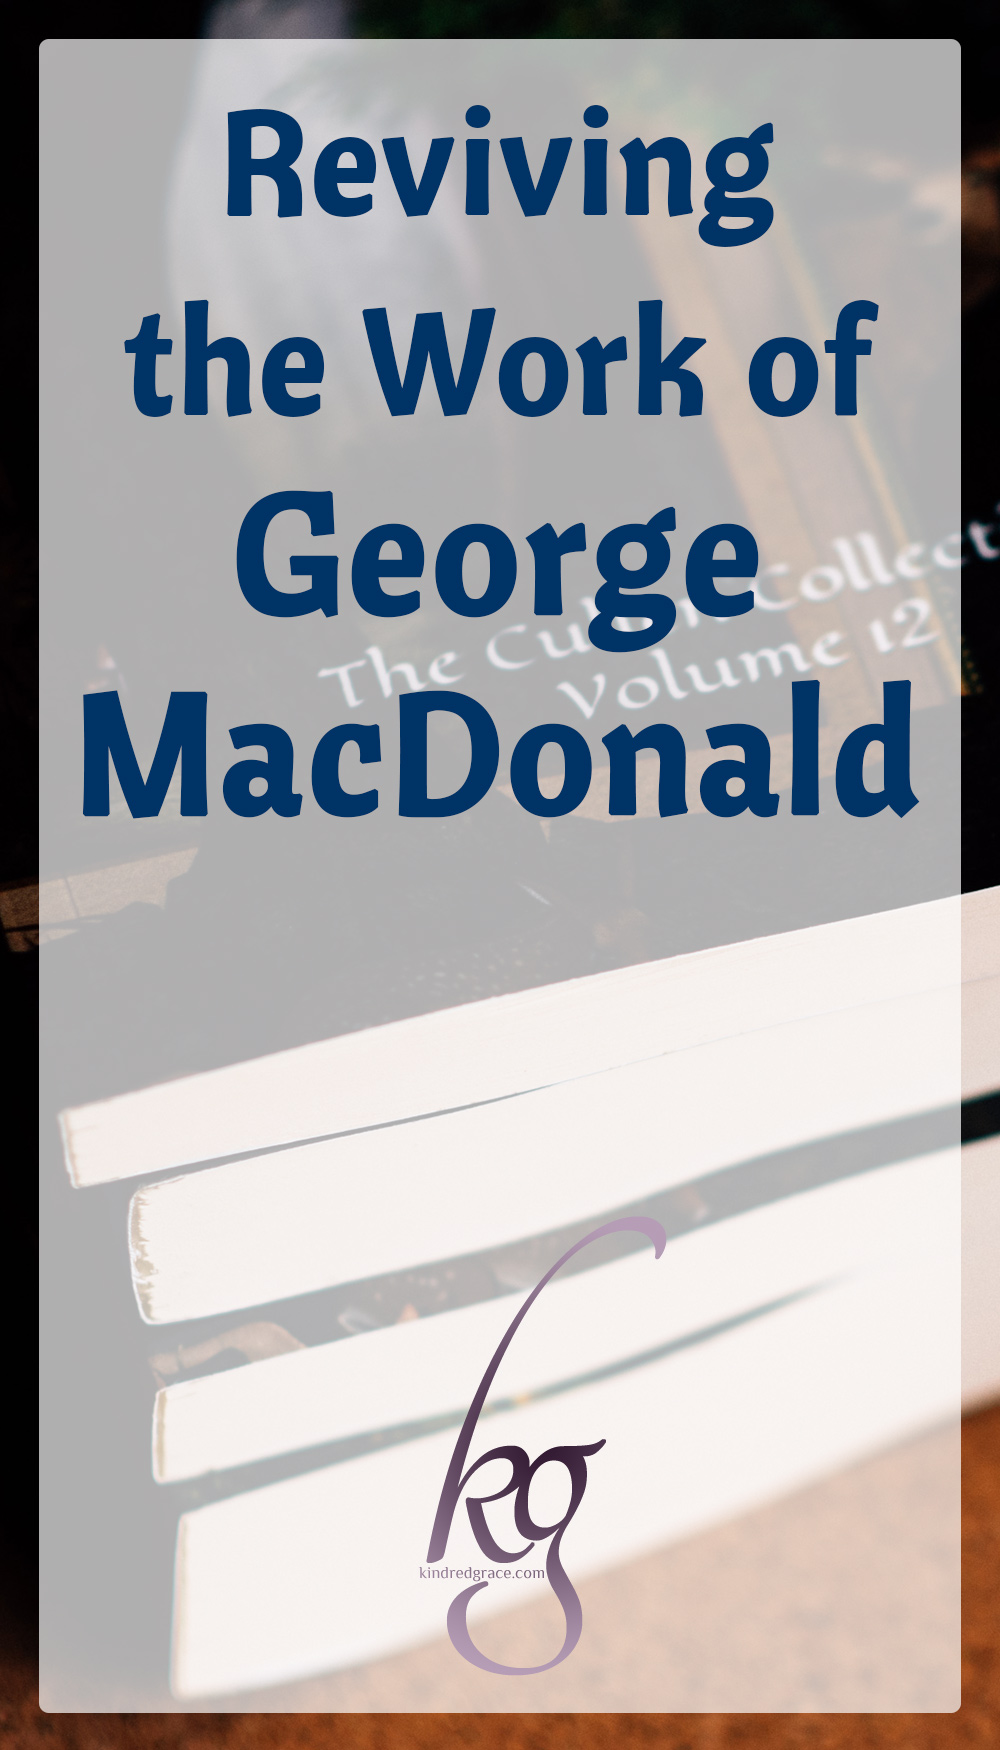 Reviving the Work of George MacDonald via @KindredGrace